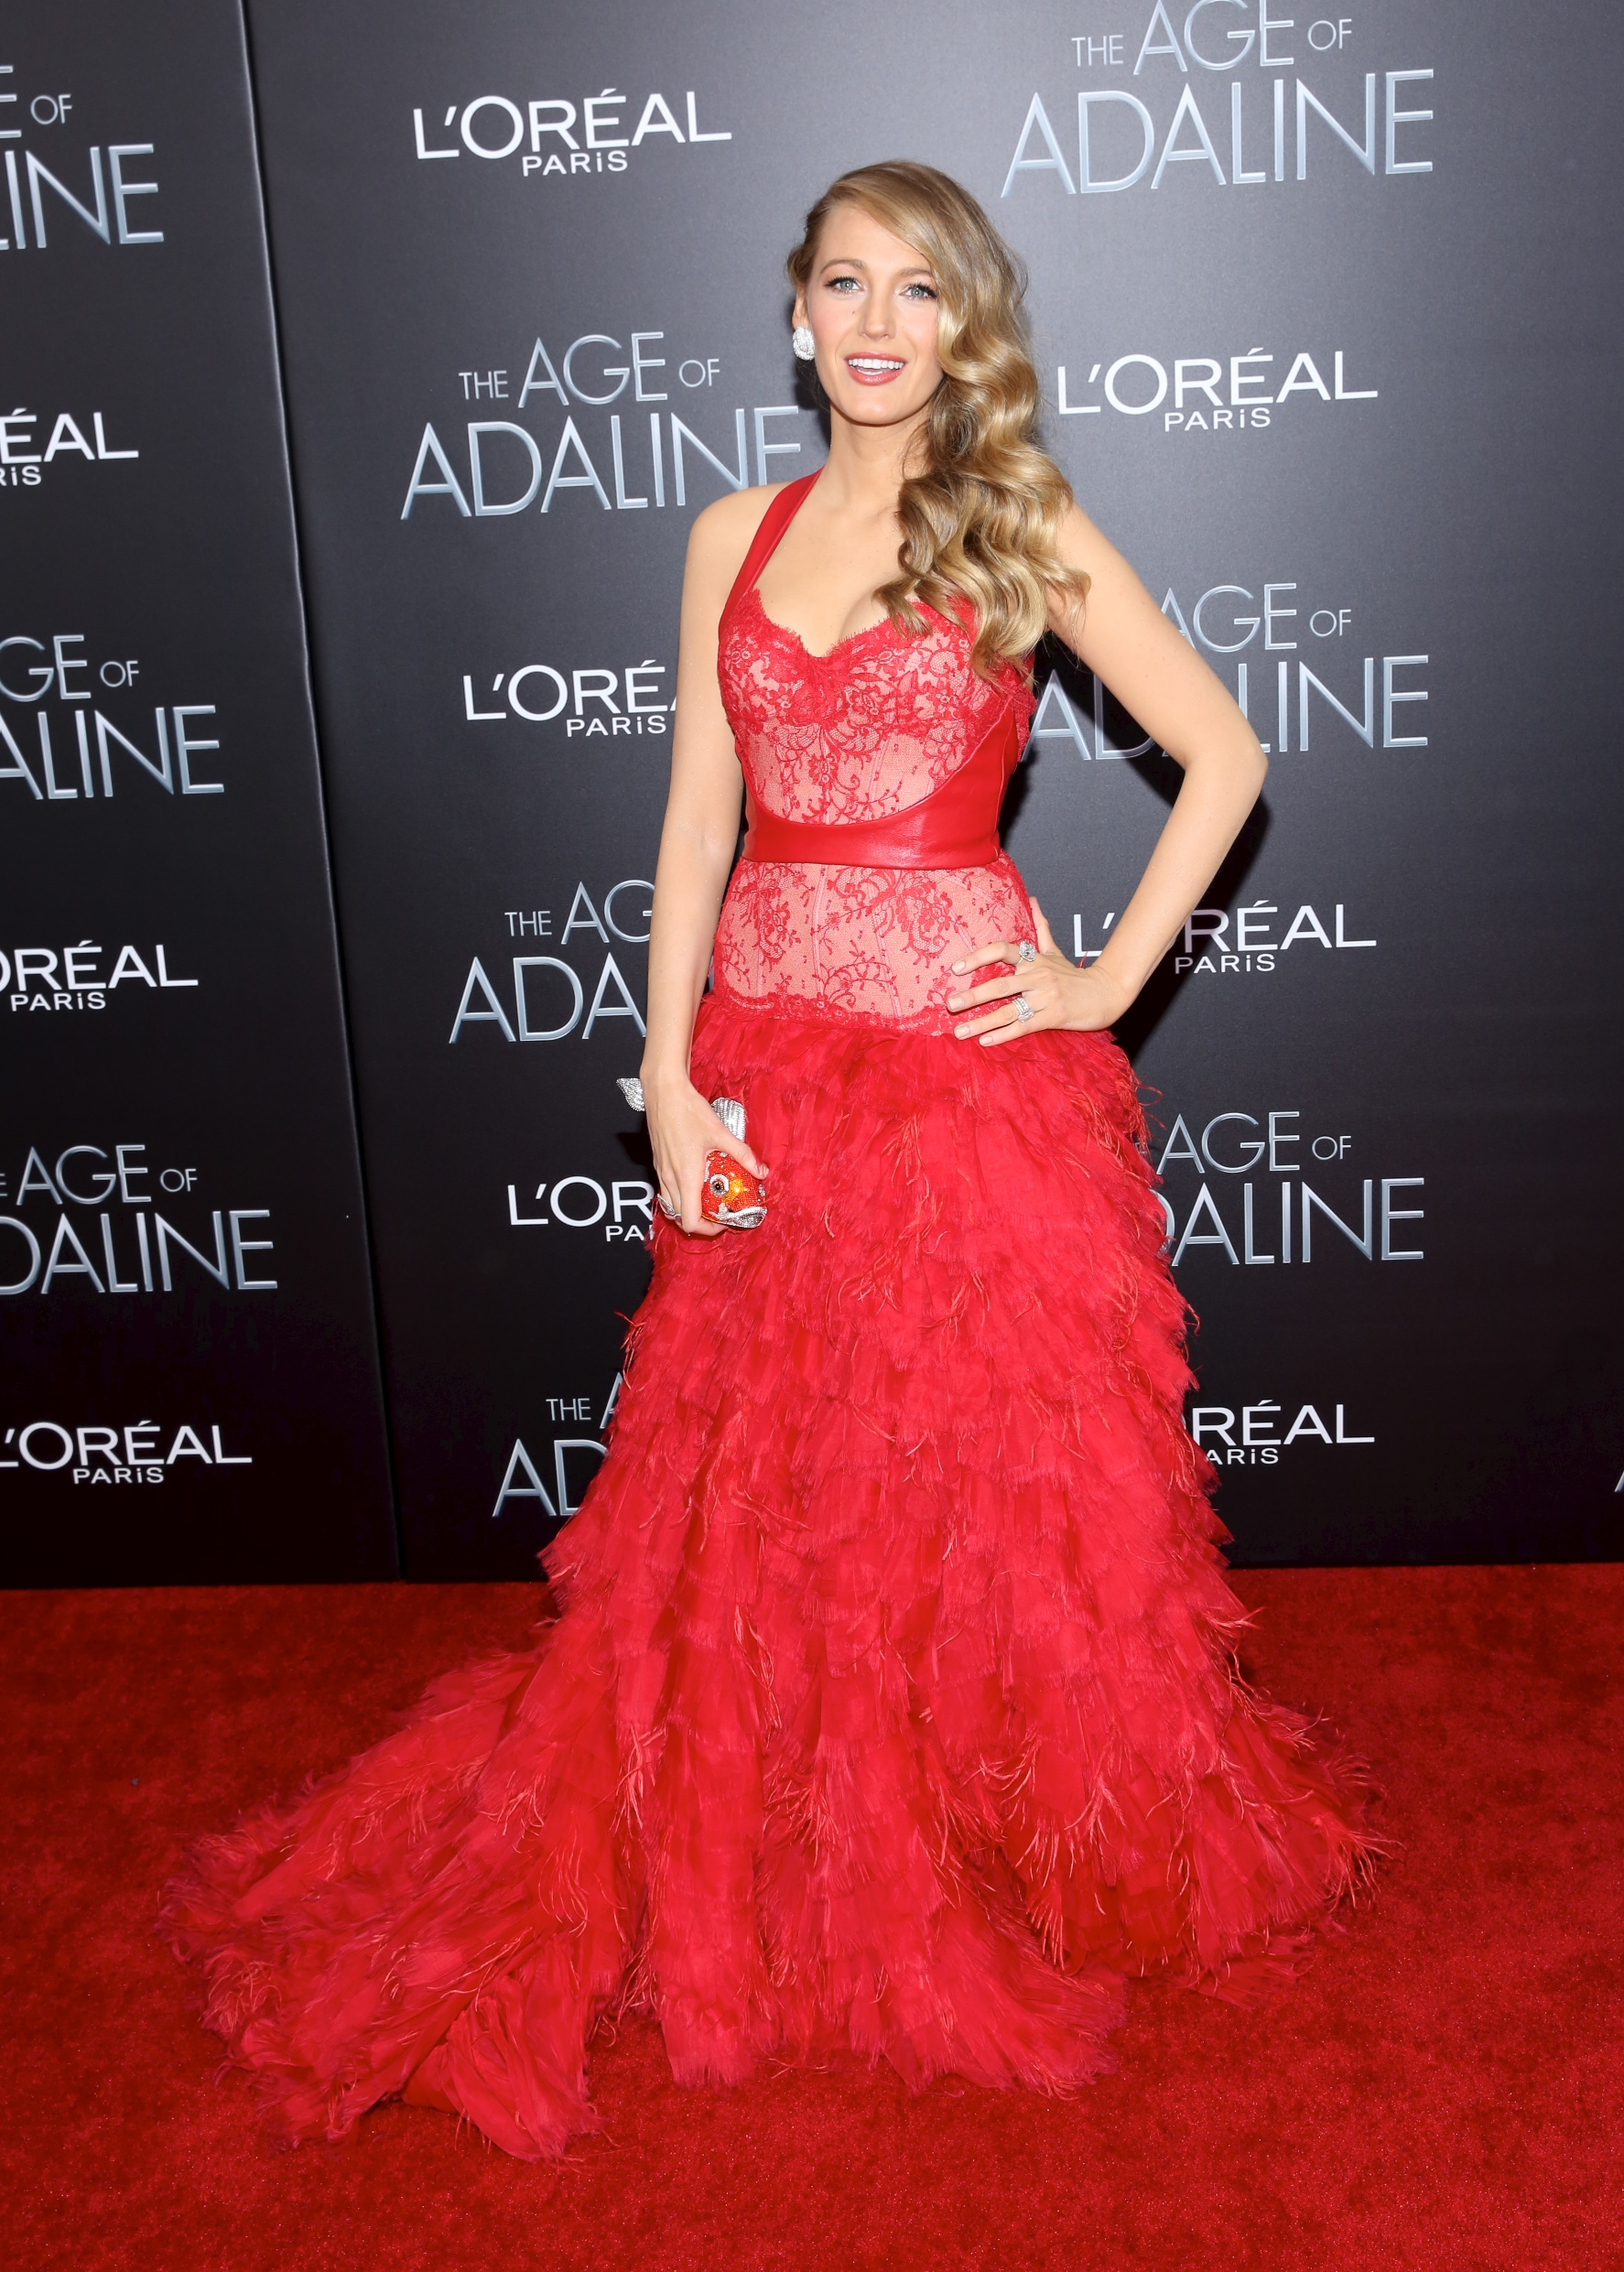 'The Age of Adaline' premiere at AMC Loews Lincoln Square 13 theater on April 19, 2015 in New York City. Featuring: Blake Lively Where: New York, New York, United States When: 20 Apr 2015 Credit: Andres Otero/WENN.com